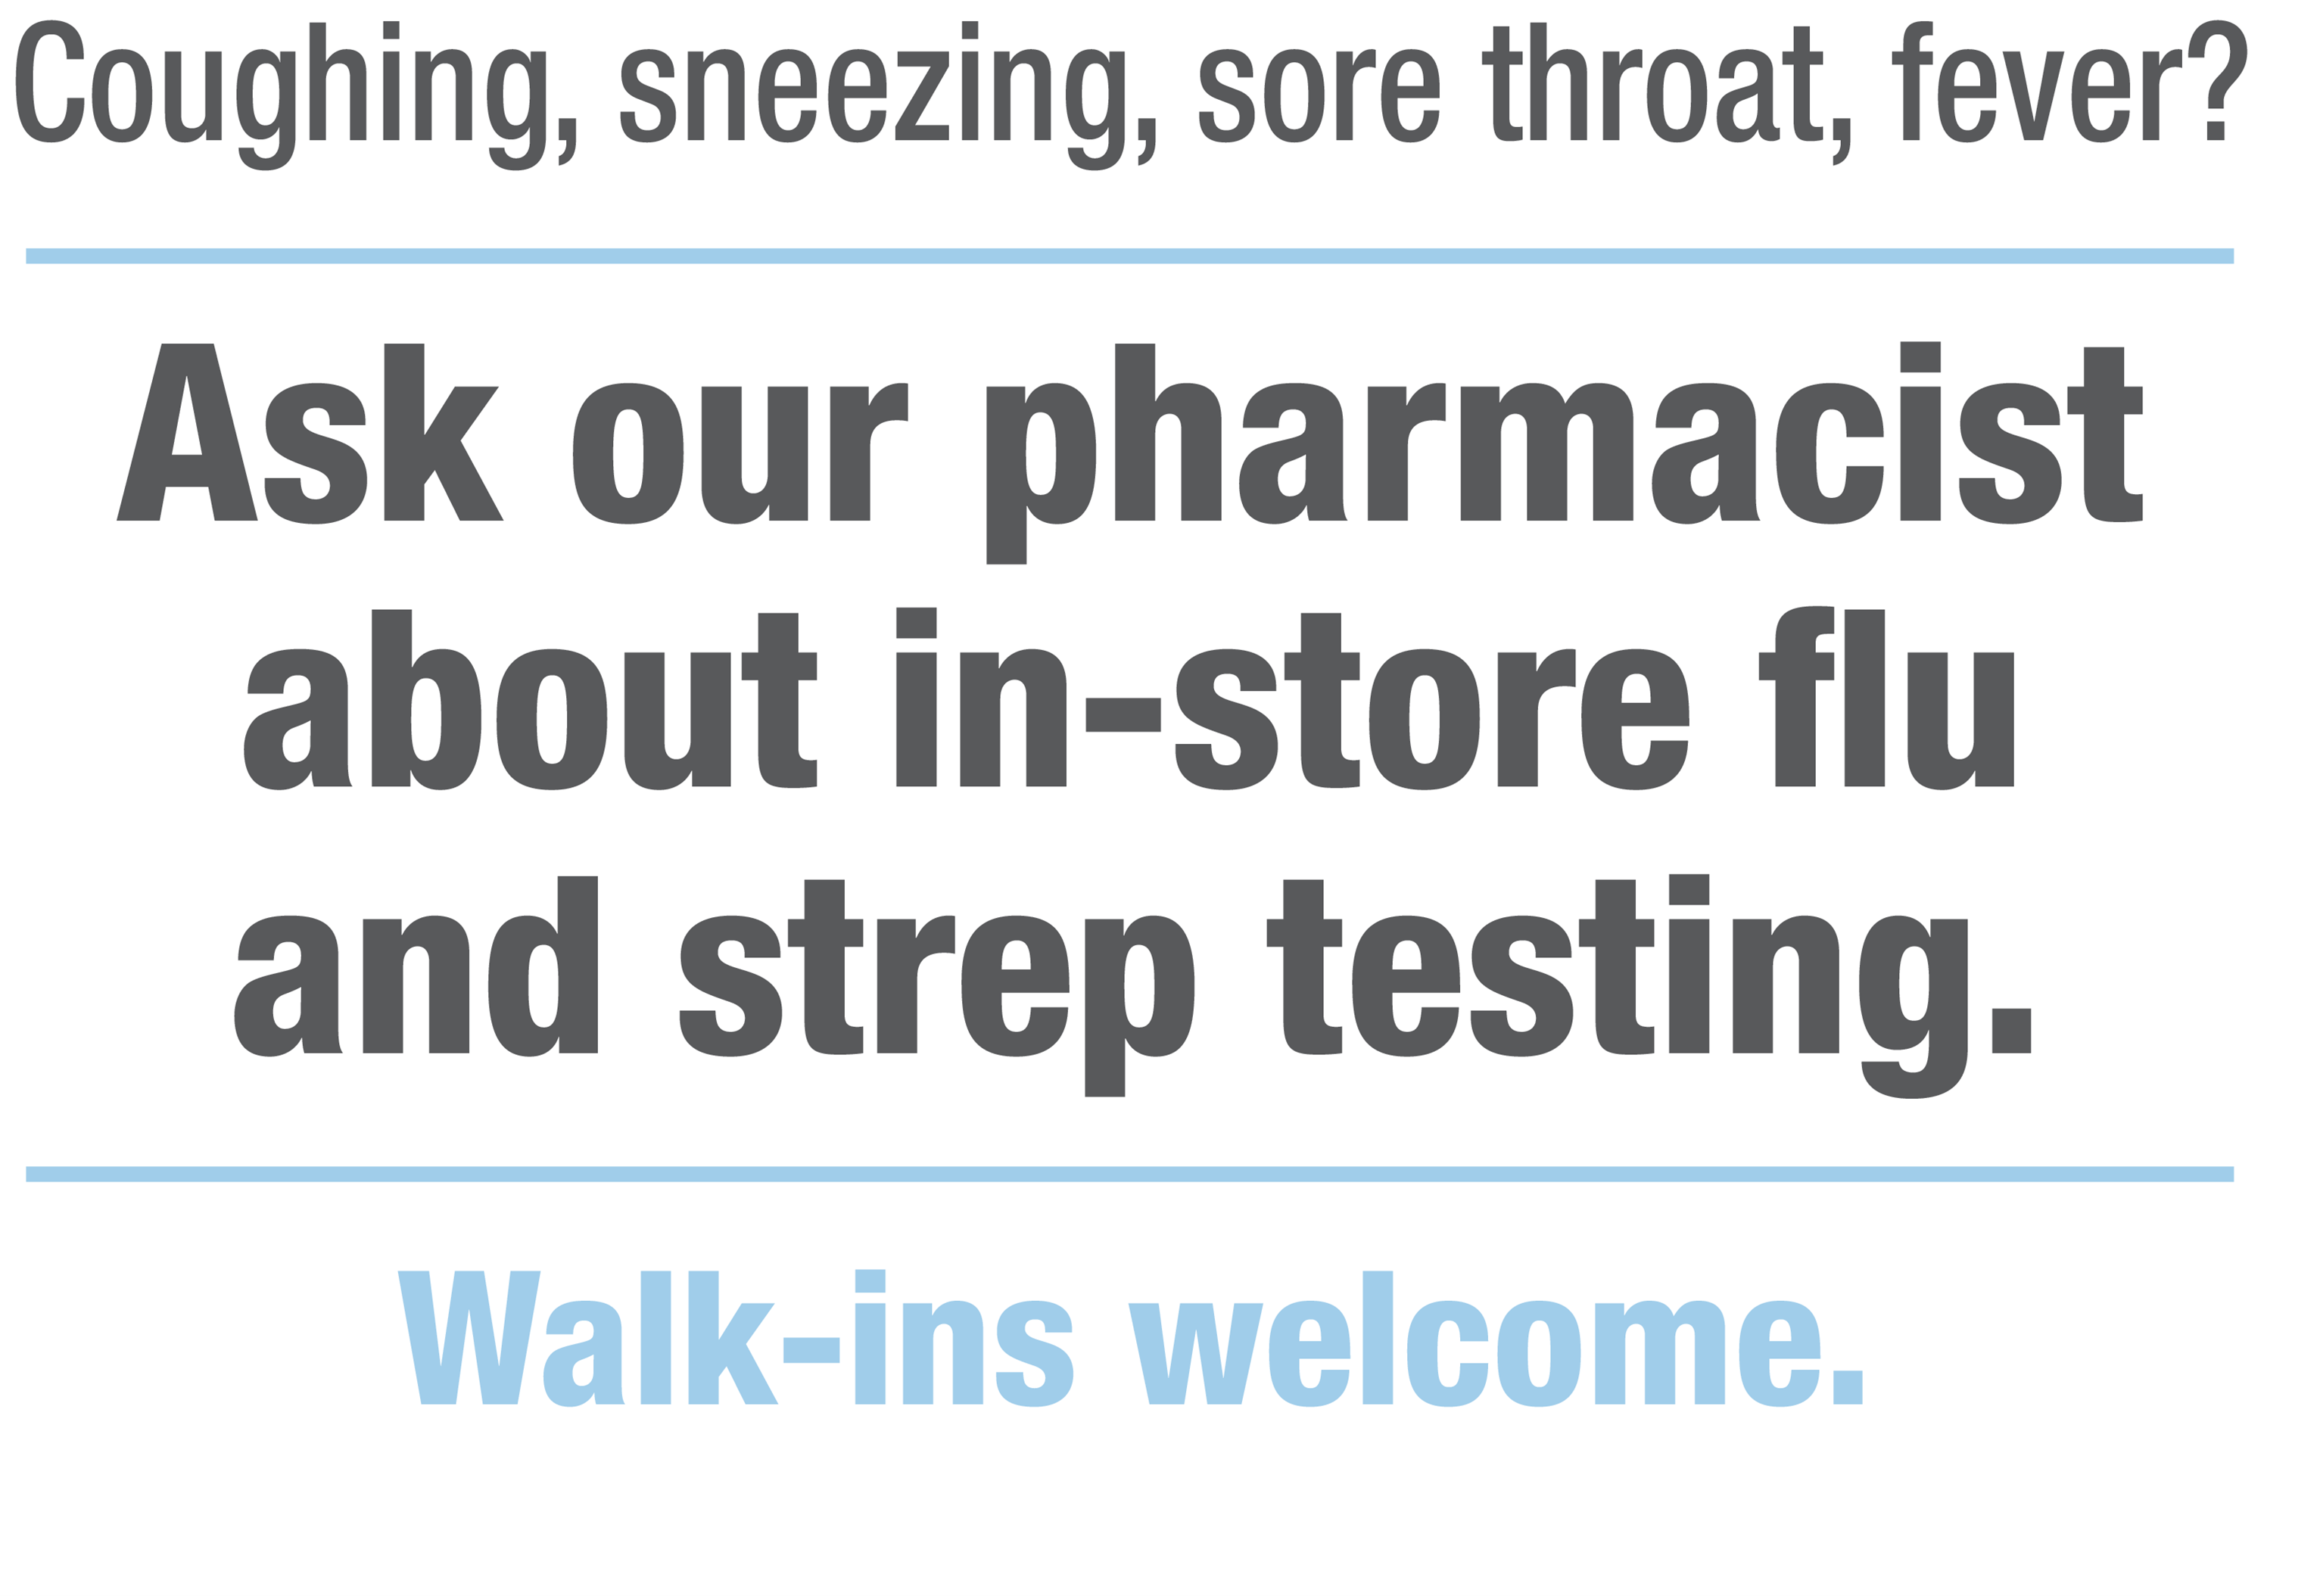 flu_sneezing_fever_sore_throat_coughing_test_testing